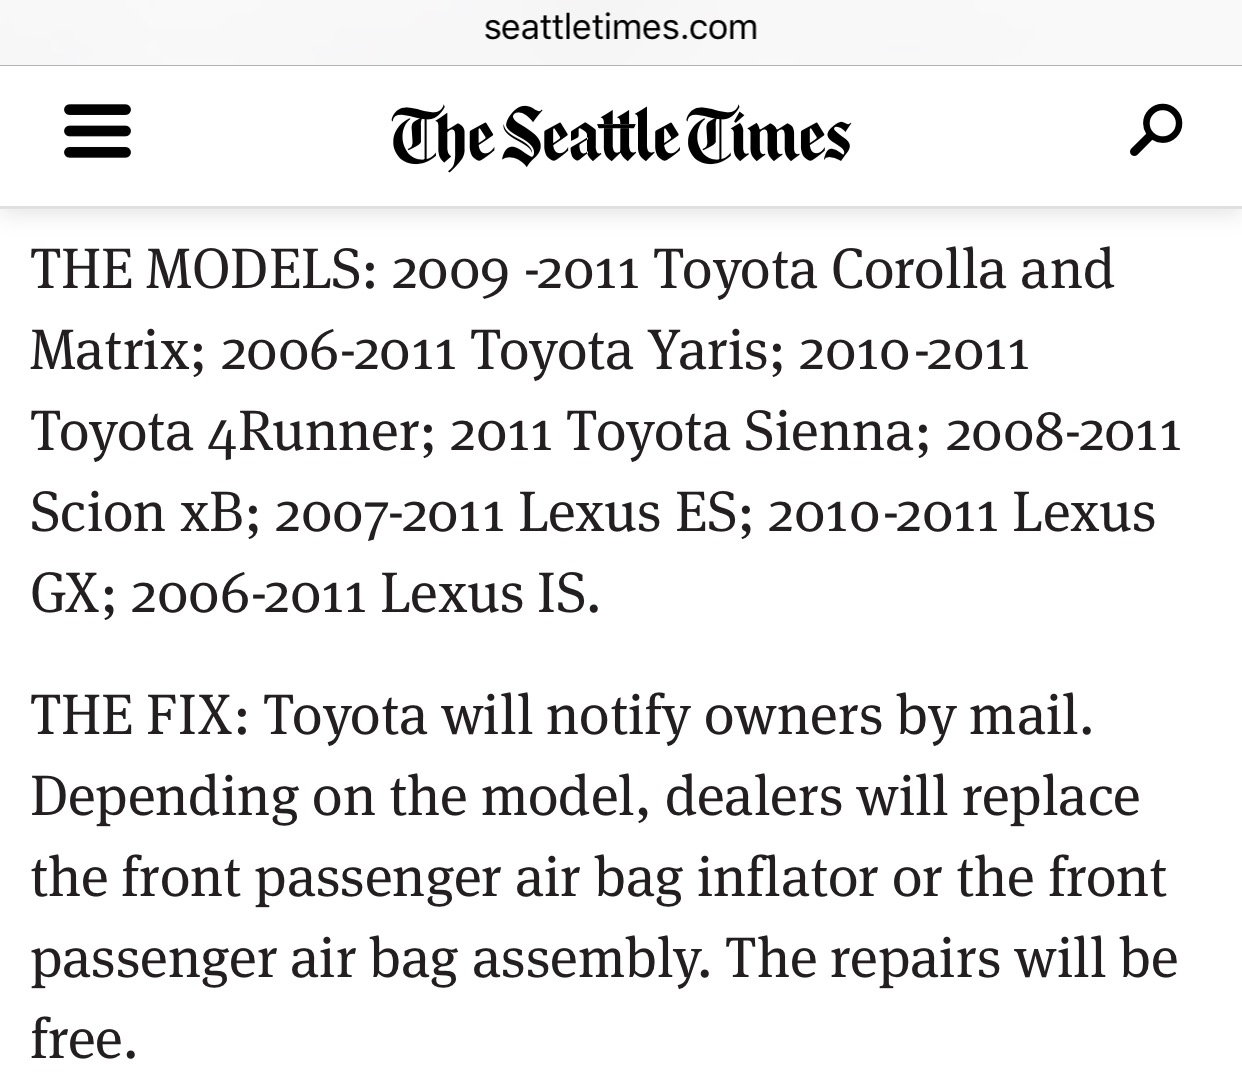 2006-2011 Lexus IS250/350. http://www.seattletimes.com/business...ir-bag- recall/